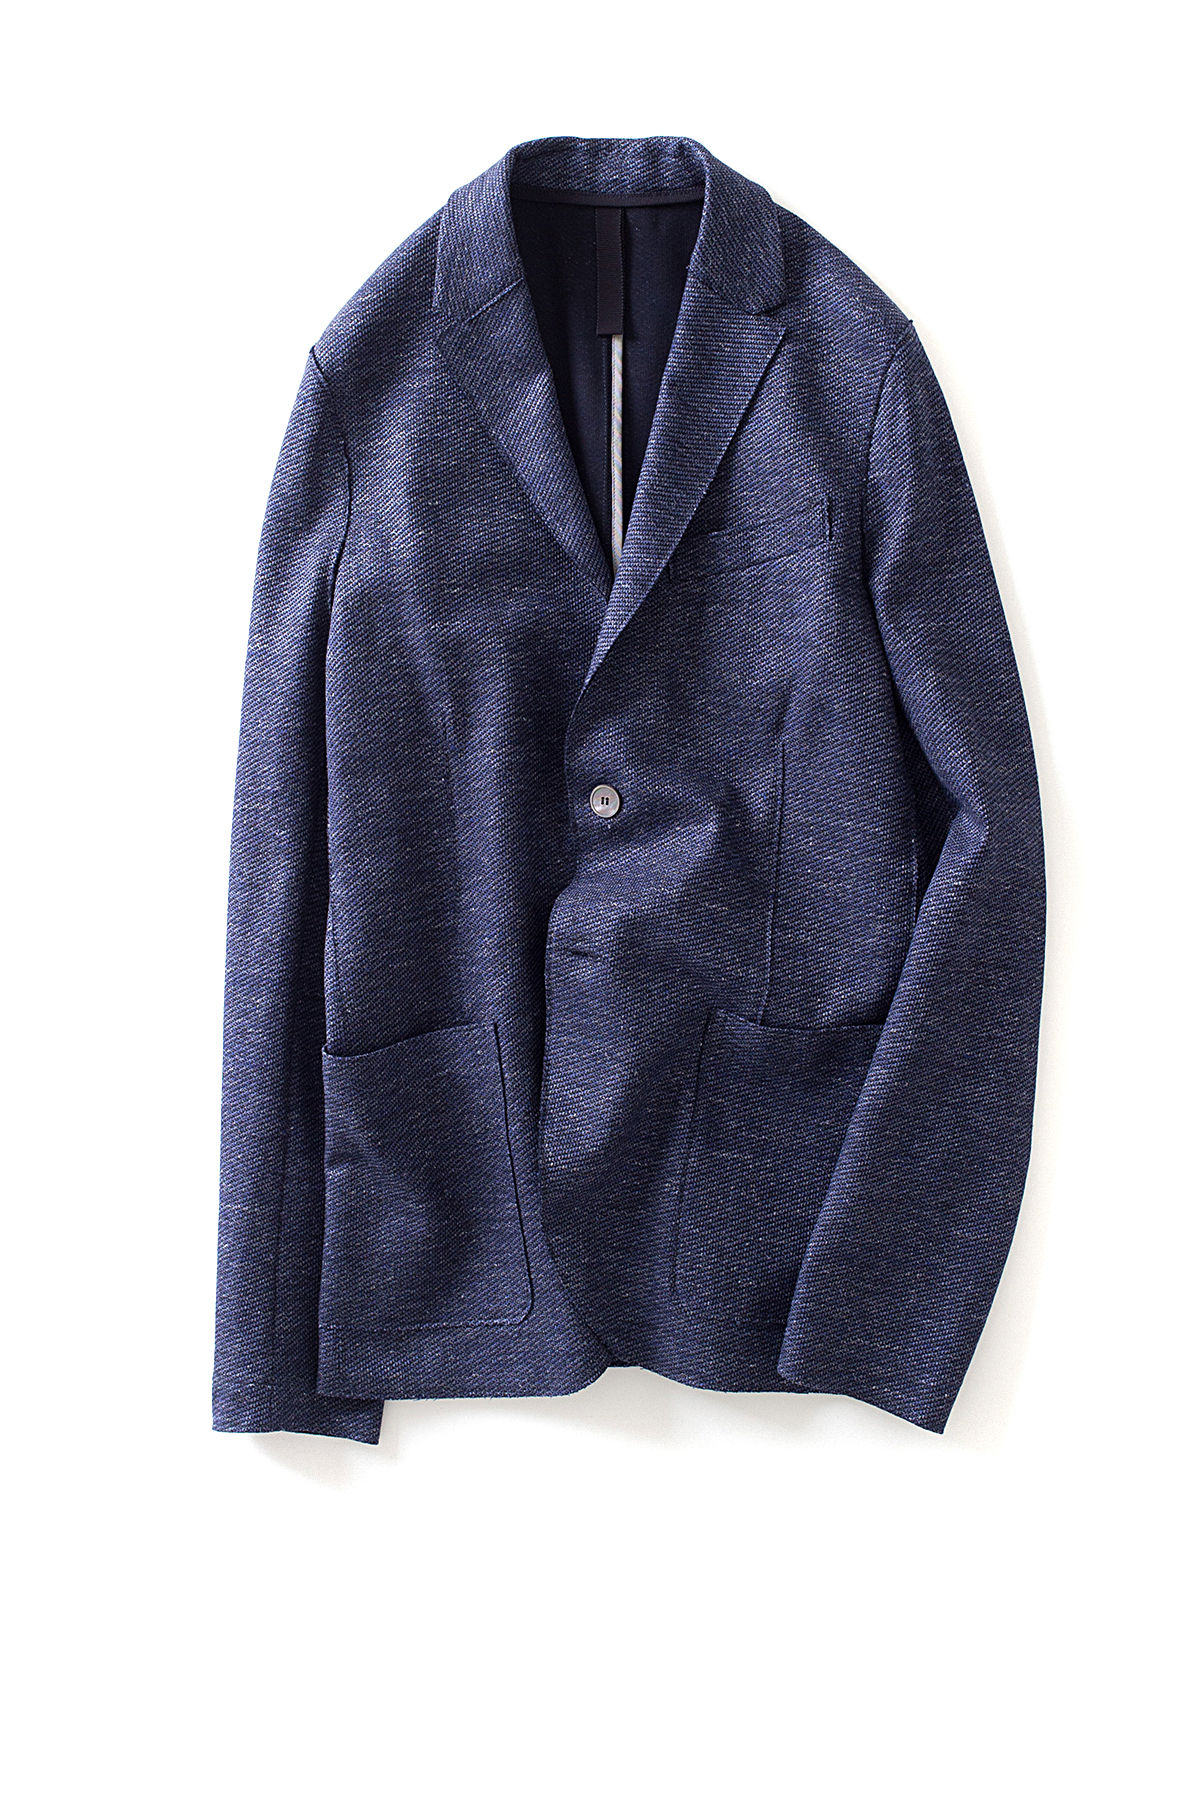 Harris Wharf London : 2b. vented blazer Bicolour Linen (Denim)